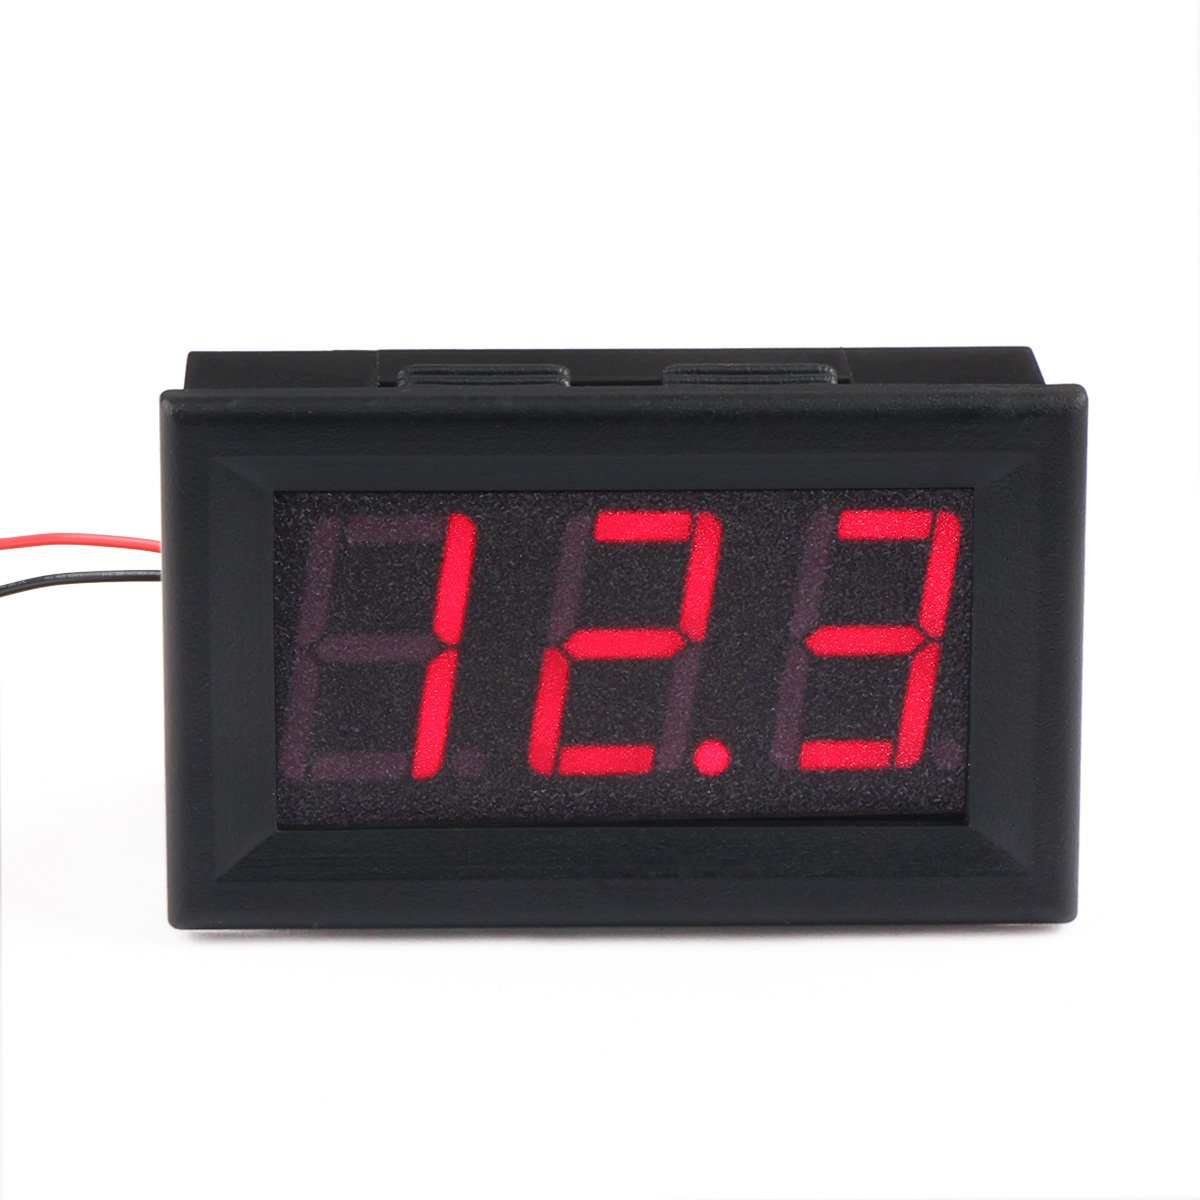 Best Rated In Automotive Replacement Voltmeter Gauges Helpful Pir Motion Sensor Wiring Diagram For A Besides Chinese Pit Bike Digital Voltage Meter 12v Drok Led Display Panel Precision Variable 2 Wires 3 Digits